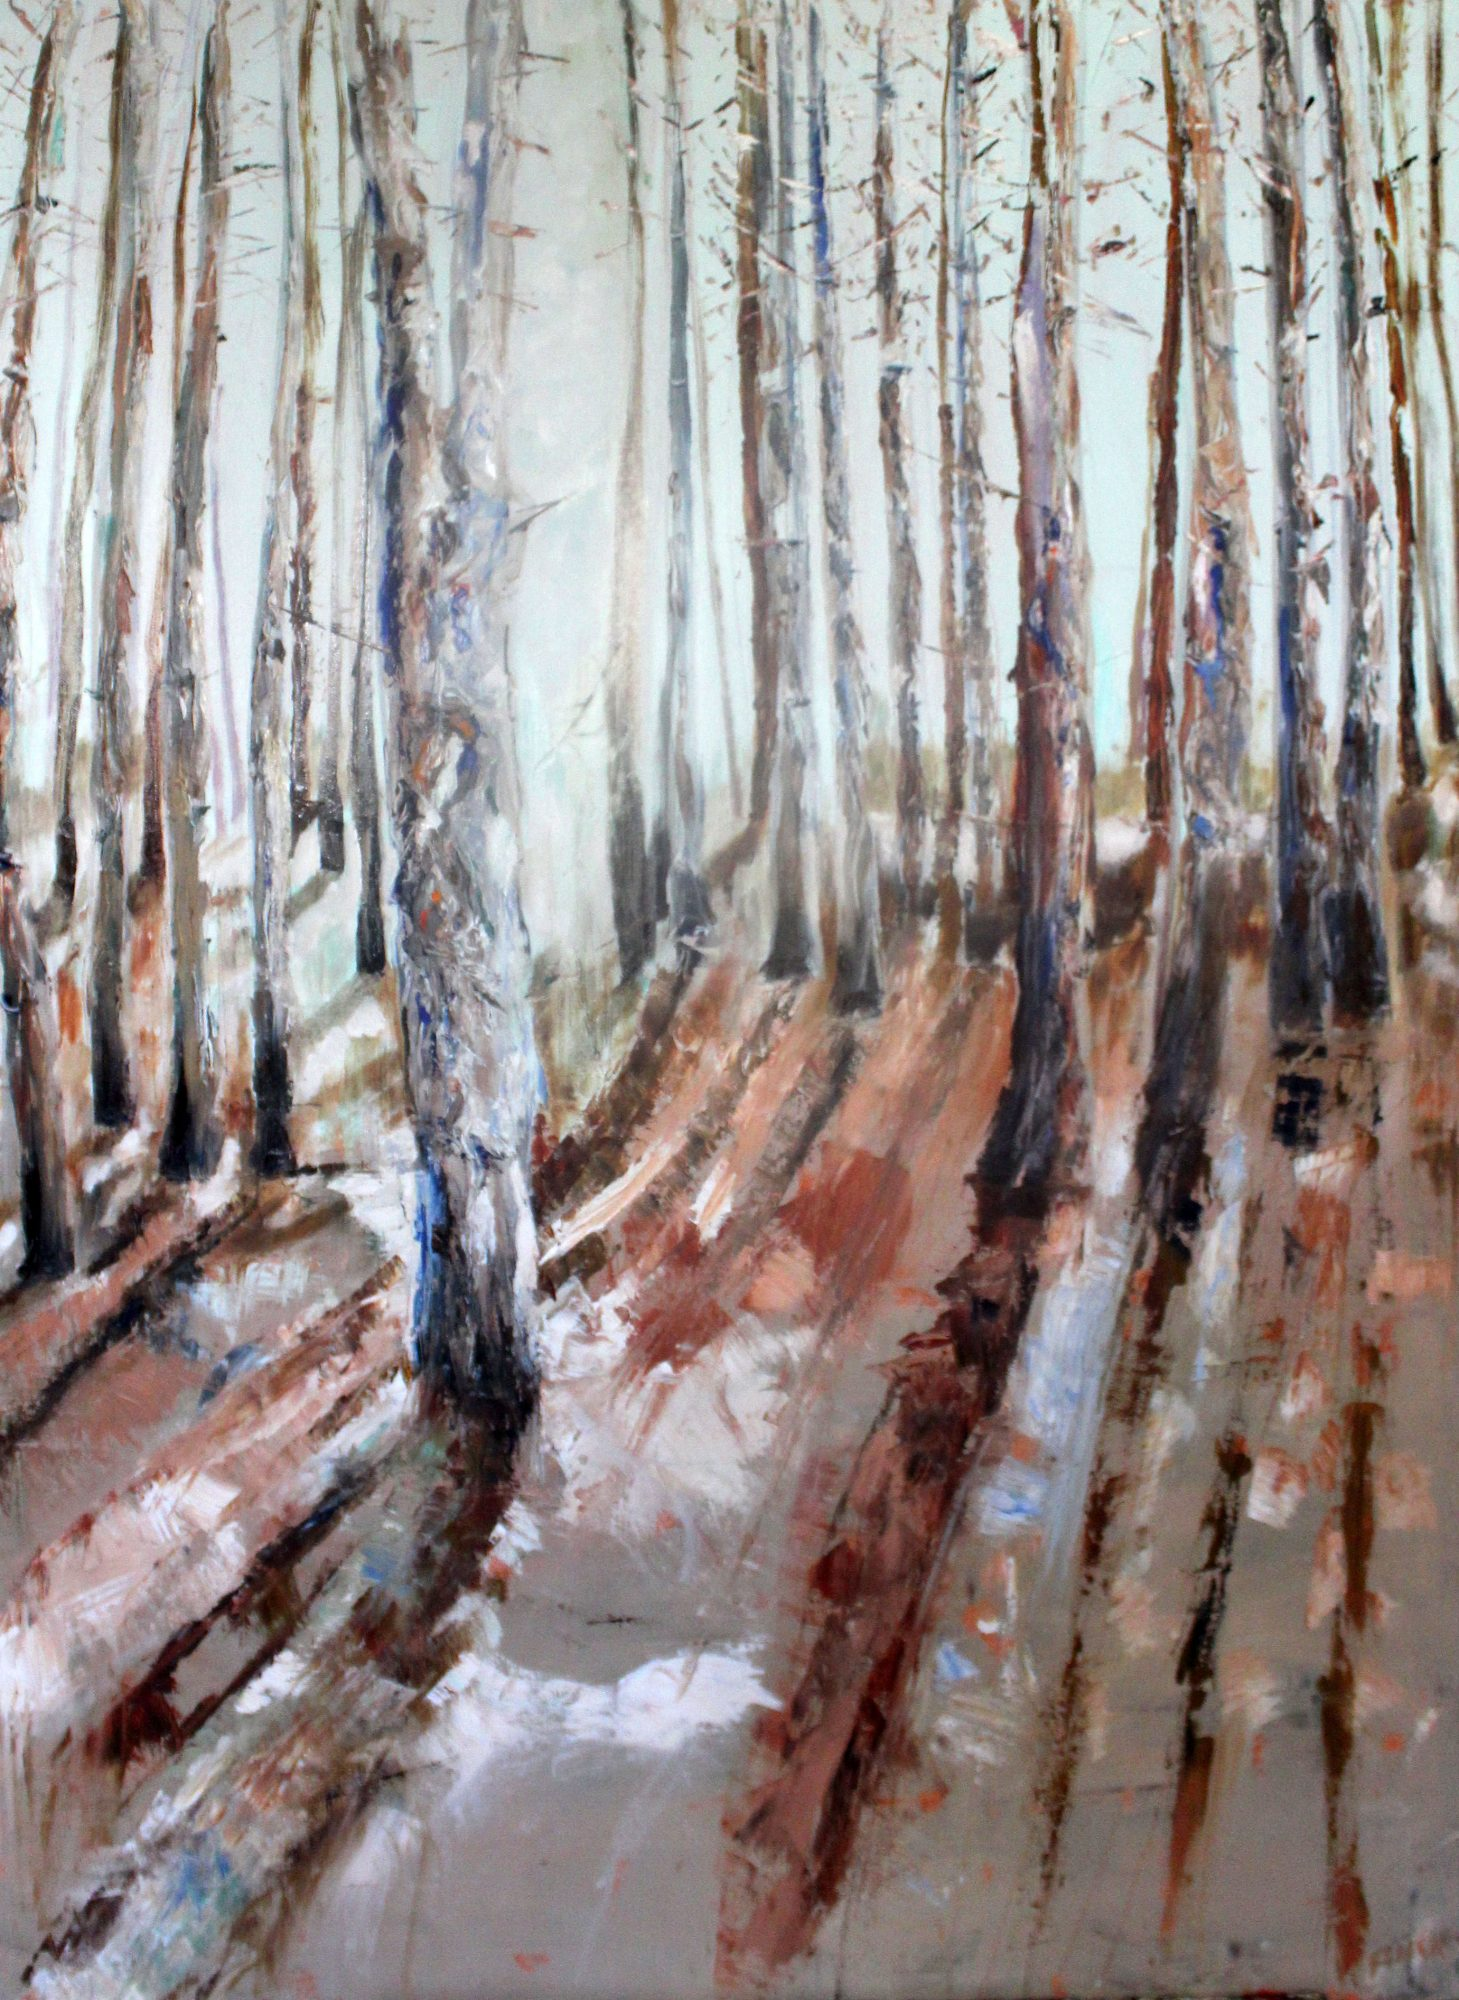 the-pine-forest-where-we-find-mushrooms-76x102cm-oil-on-canvas-600